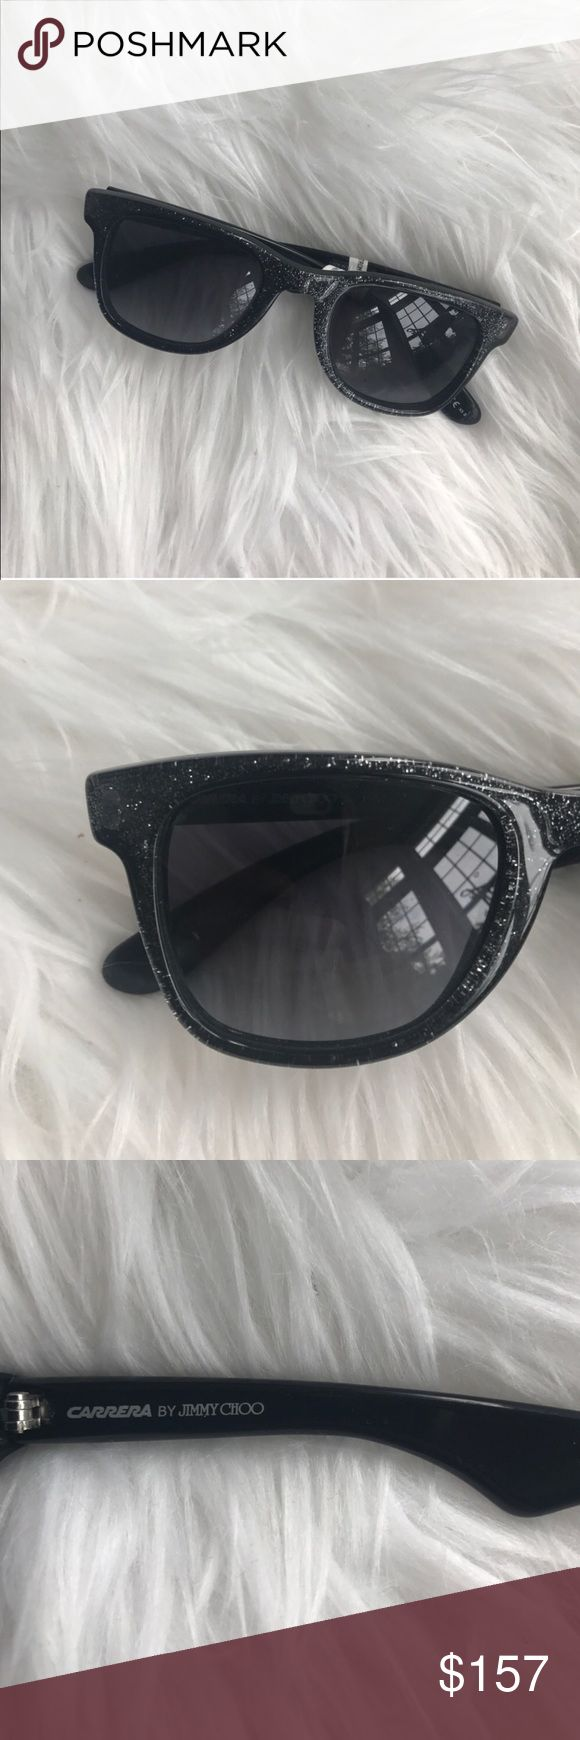 NEW Jimmy Choo Sunglasses Carrera by Jimmy Choo Black glitter sunglasses. New with tags, comes with a case but not the original. Keeping the case lol Jimmy Choo Accessories Glasses